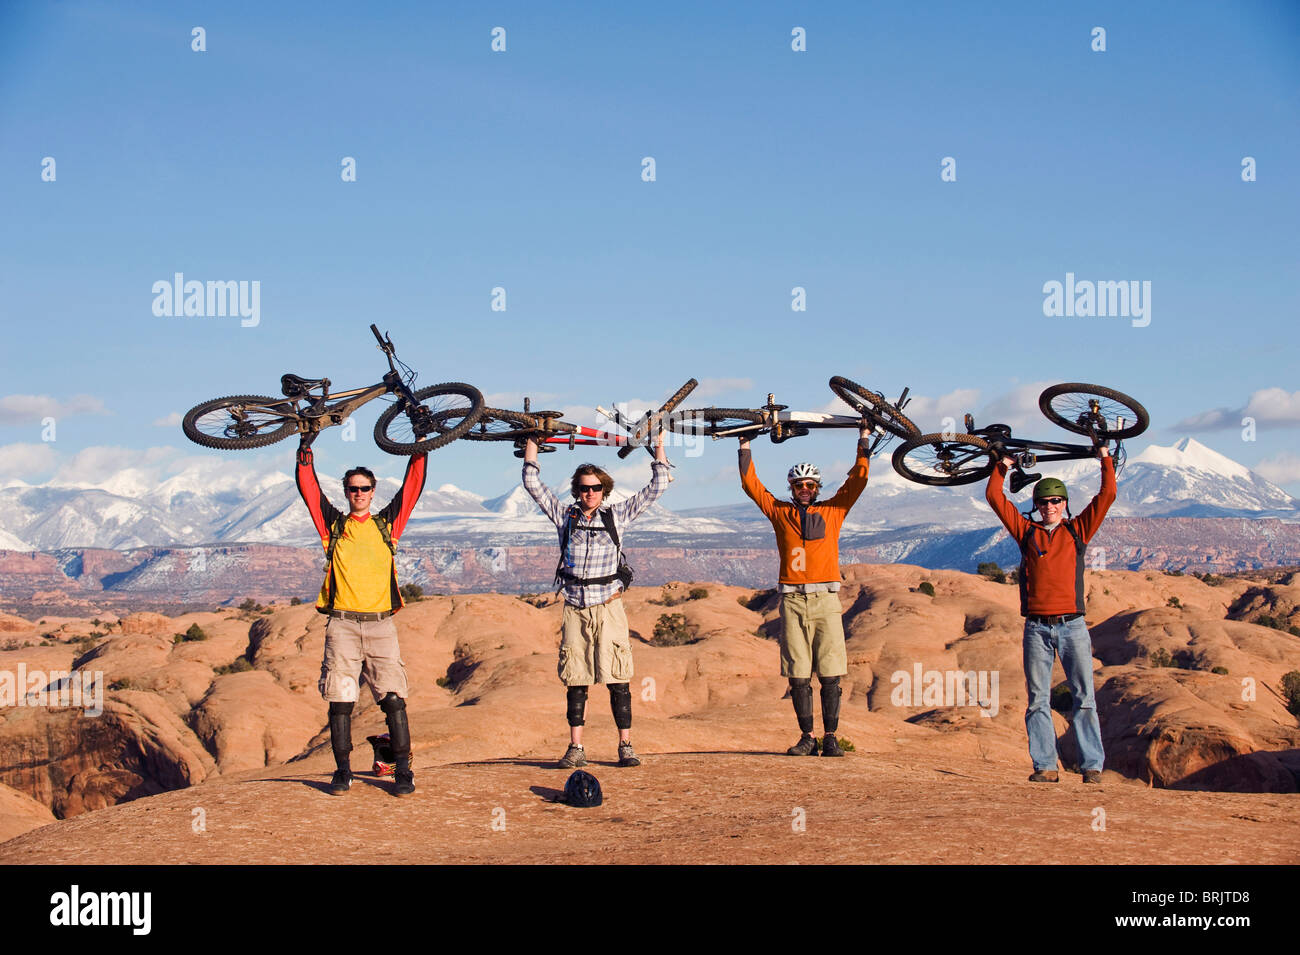 Four young men hold their bikes above their heads on the Slickrock Trail, Moab, UT. - Stock Image